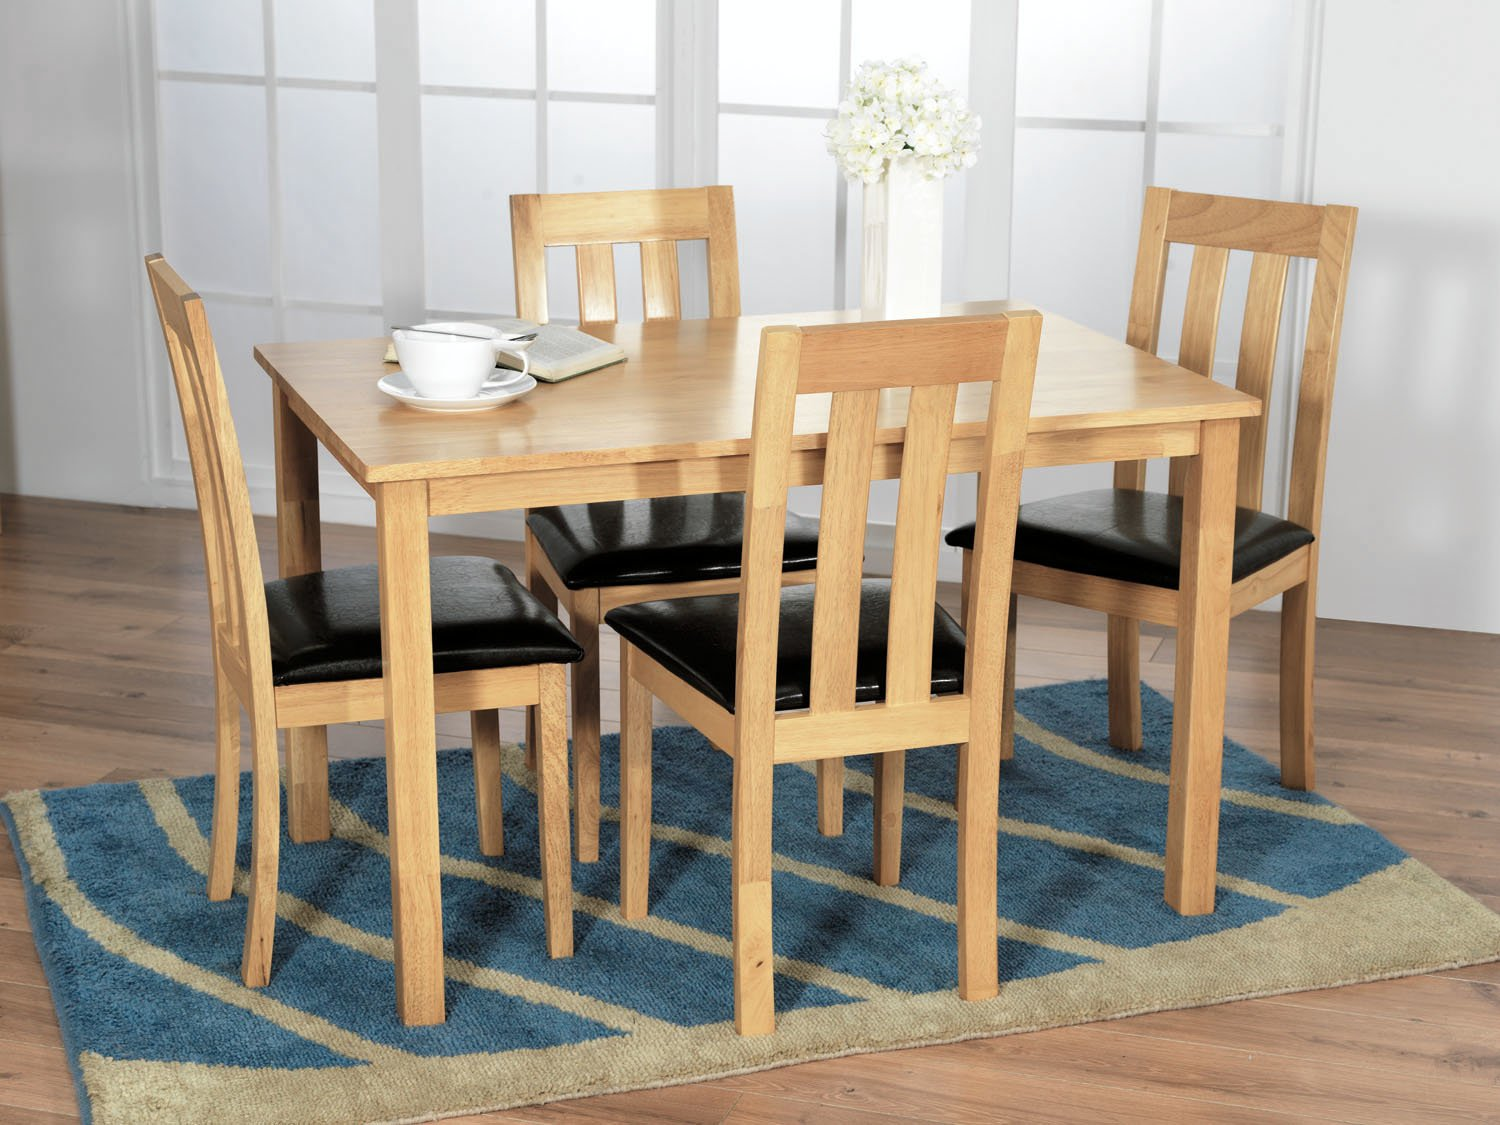 Annecy Dining Table